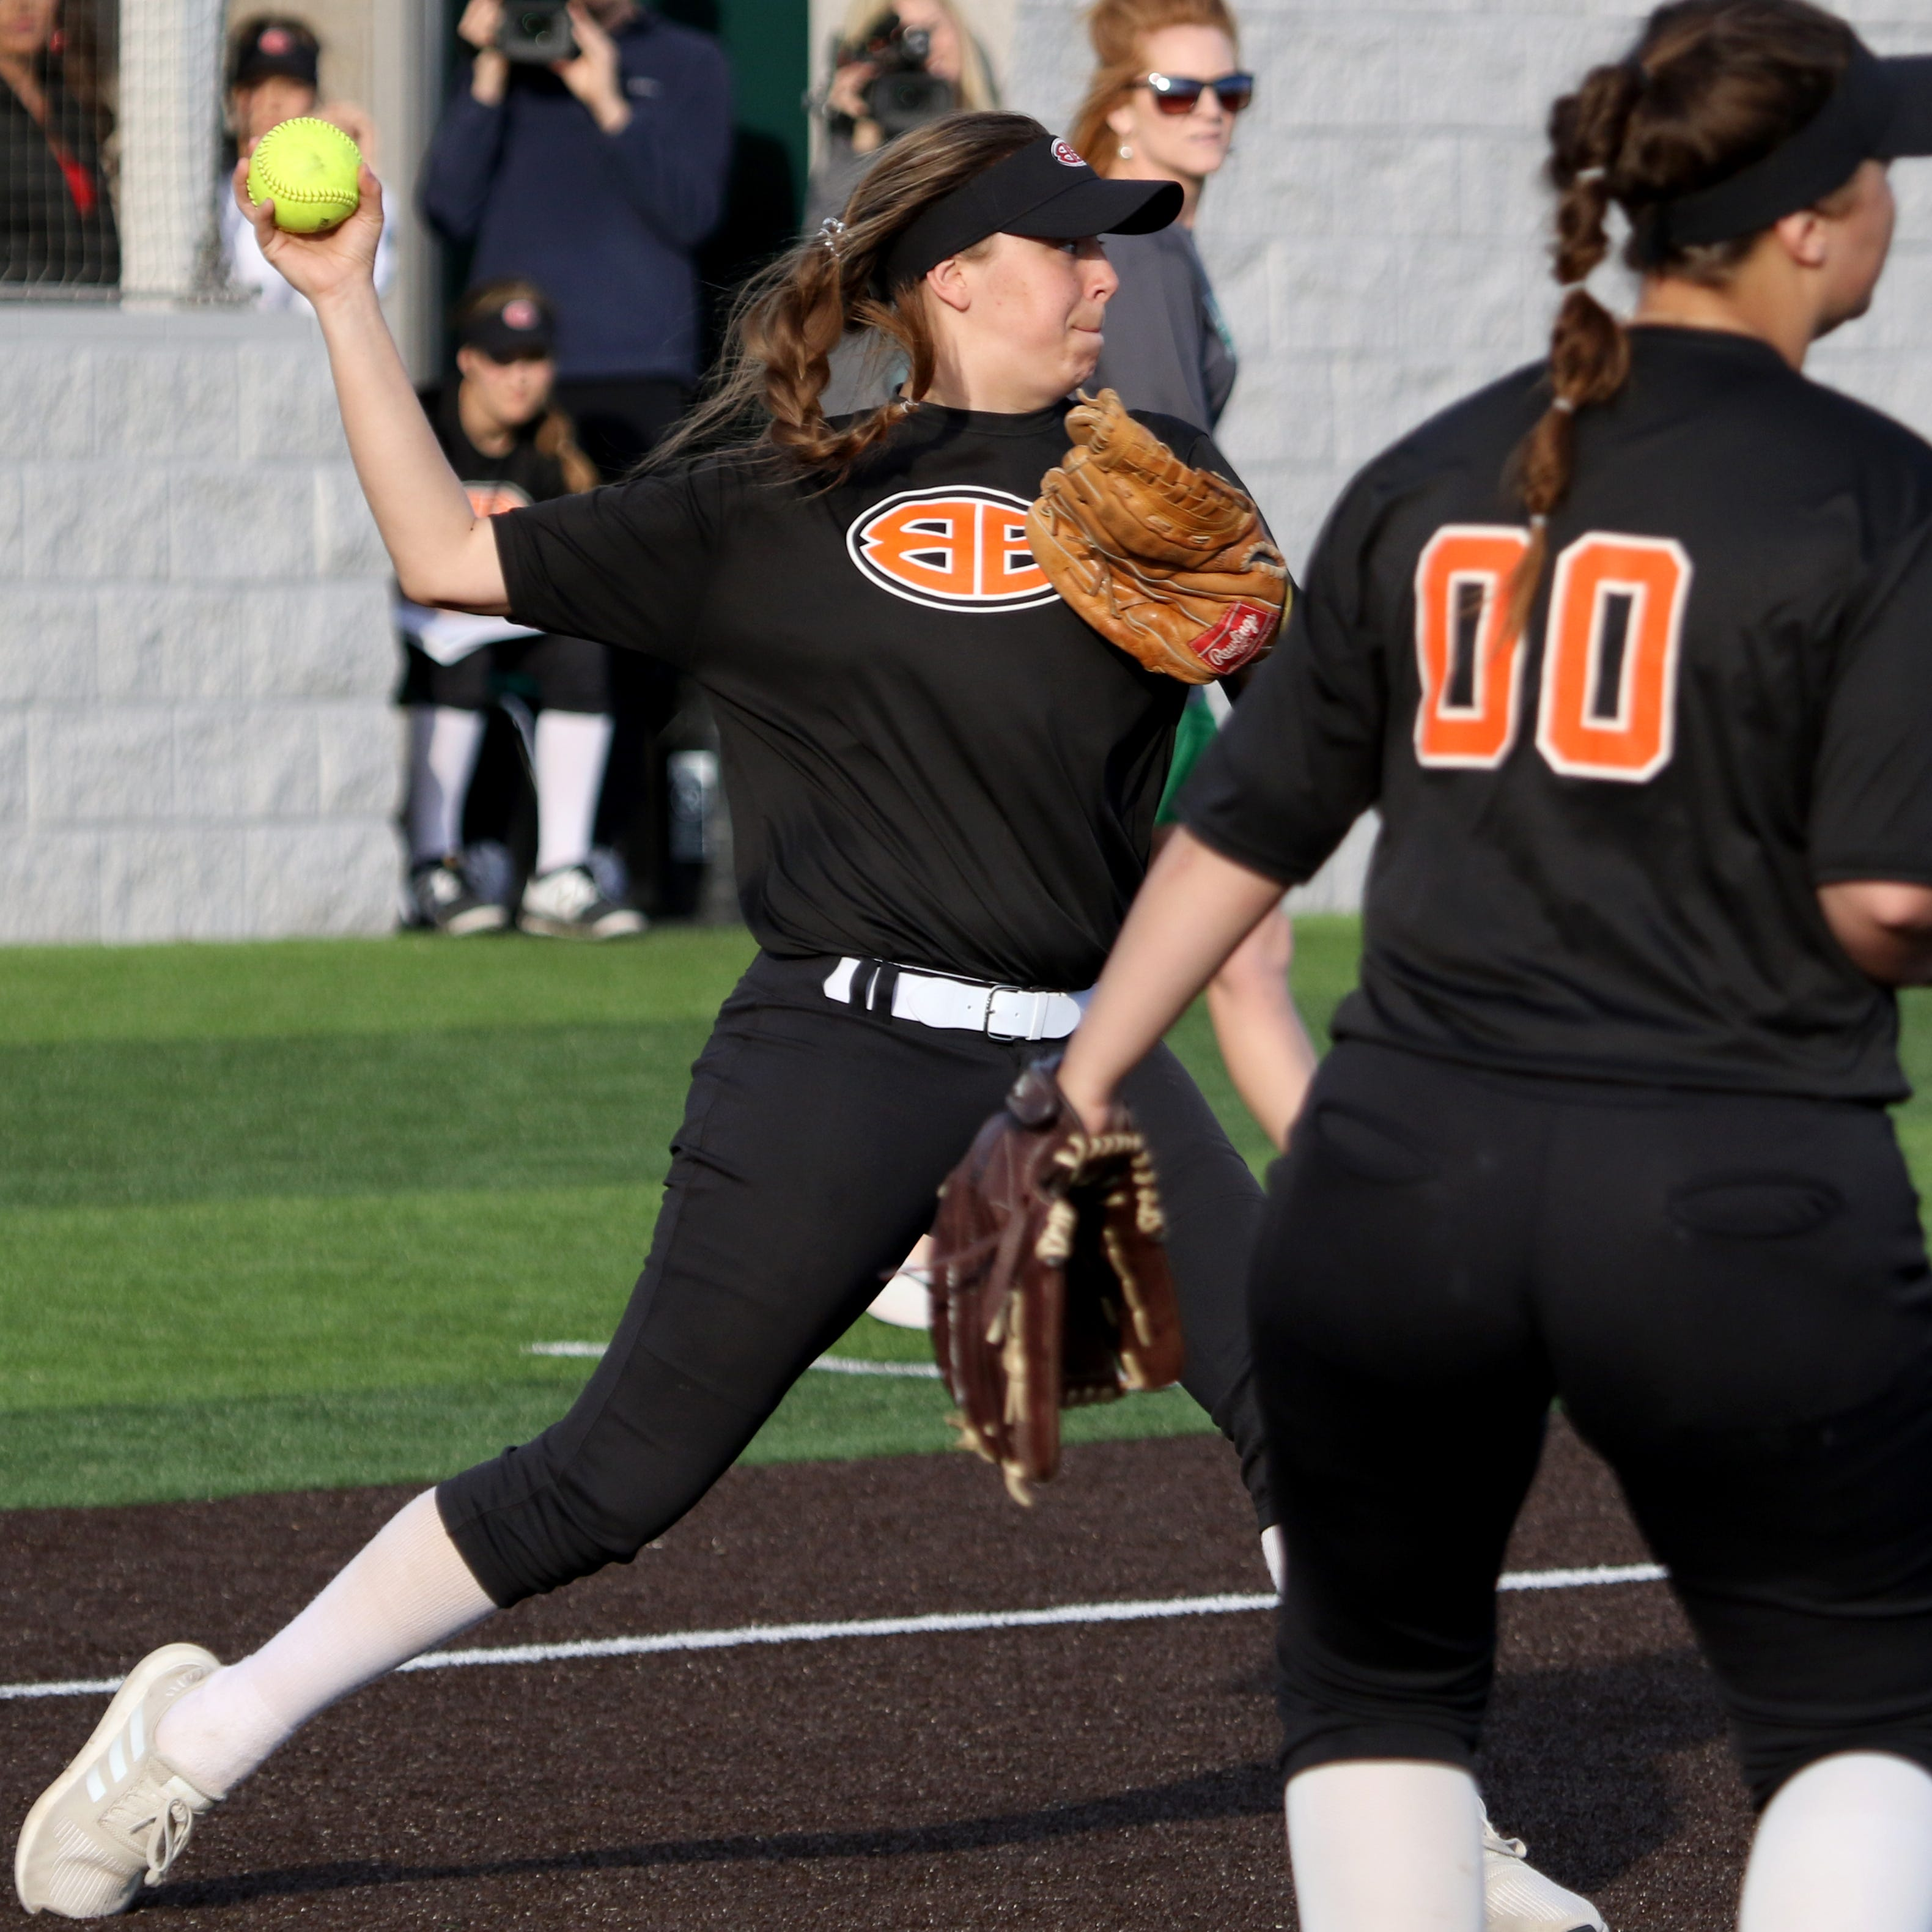 Burkburnett's Kelsea Armstrong hopes to follow sister's similar path to state tournament